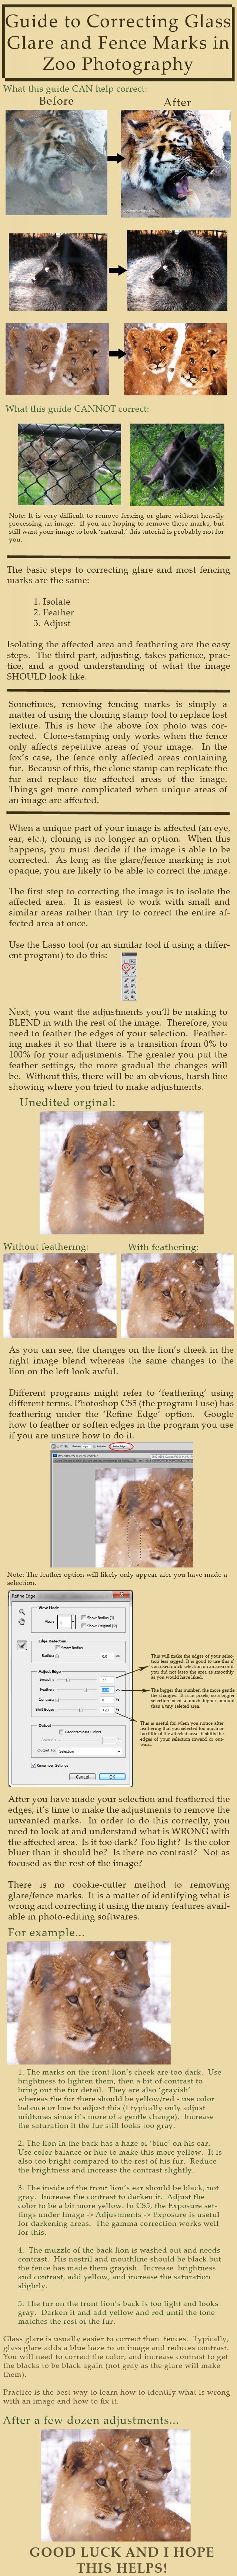 Guide to Removing Glare/Fencing in Zoo Photography by HOTNStock.deviantart.com on @deviantART